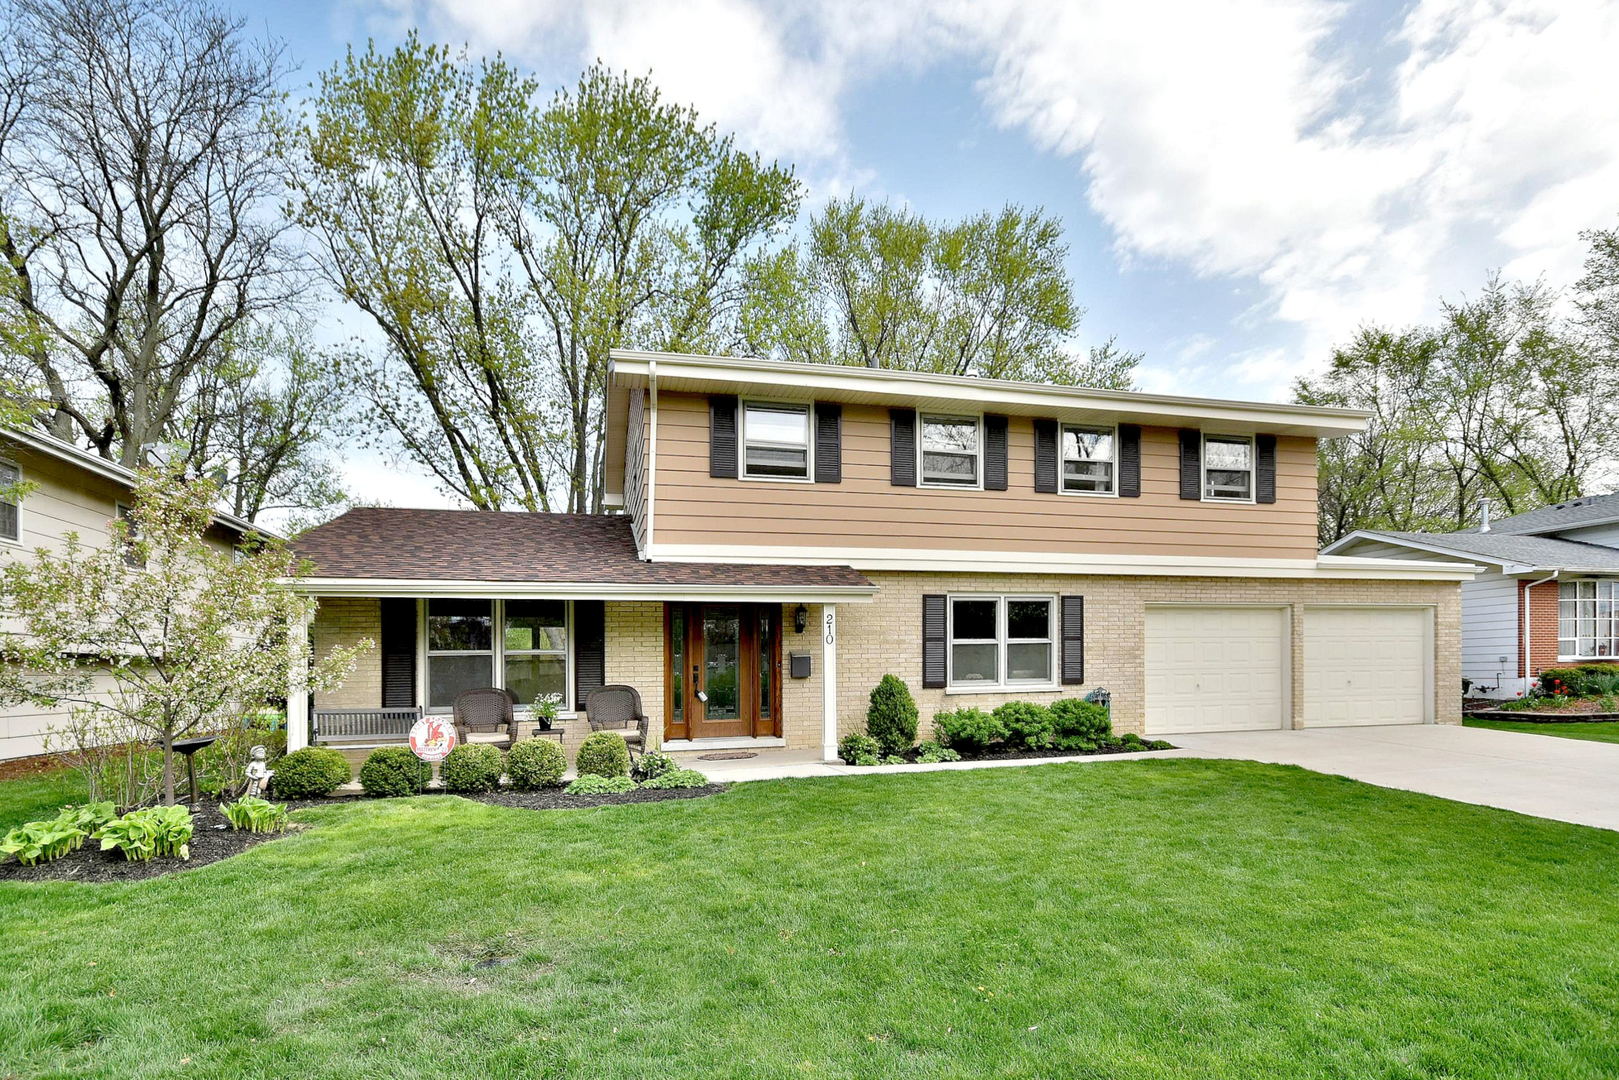 Photo for 210 56th Street, DOWNERS GROVE, IL 60516 (MLS # 10359960)